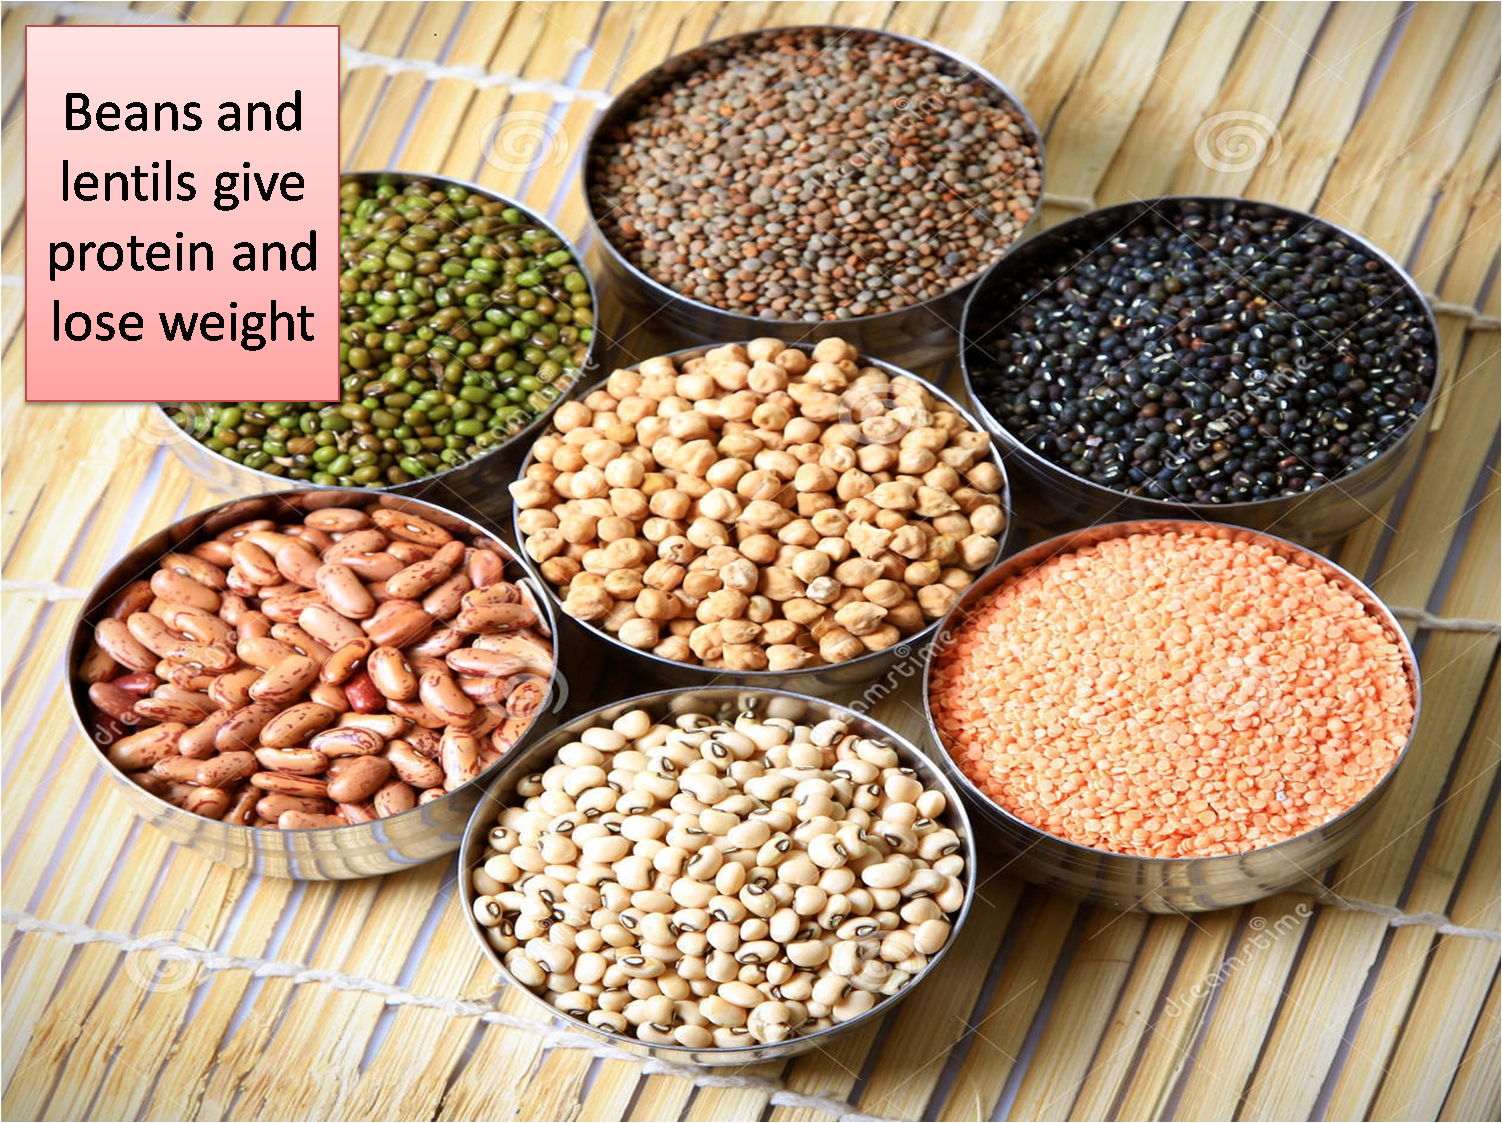 Can Beans And Lentils Alone Fulfil My Daily Protein Requirement Beans And Lentils Are Good Sources Of Protein If Good Sources Of Protein Canned Beans Lentils